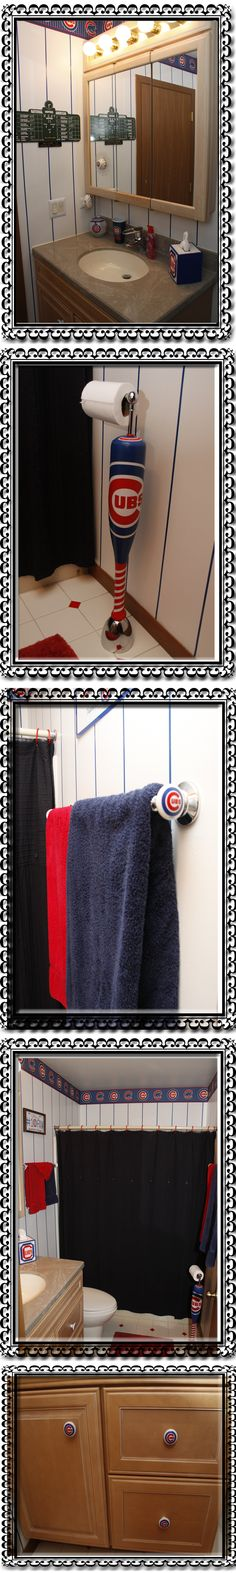 This is our Chicago Cubs bathroom.To theme it up I painted the walls white and then added blue automotive pinstripe tape. The top of the walls is capped with a Cubs wallpaper border. The TP holder is an Umbro freestanding unit with a drilled toy soft plastic Cubs bat over the vertical pipe. The cabinet and towel bars were retro-fitted with Cubs drawer pulls to add to the room. Other additions are a plastic canvas Cubs kleenex cover, Cubs cup, Cubs soap and a Cubs Candle.